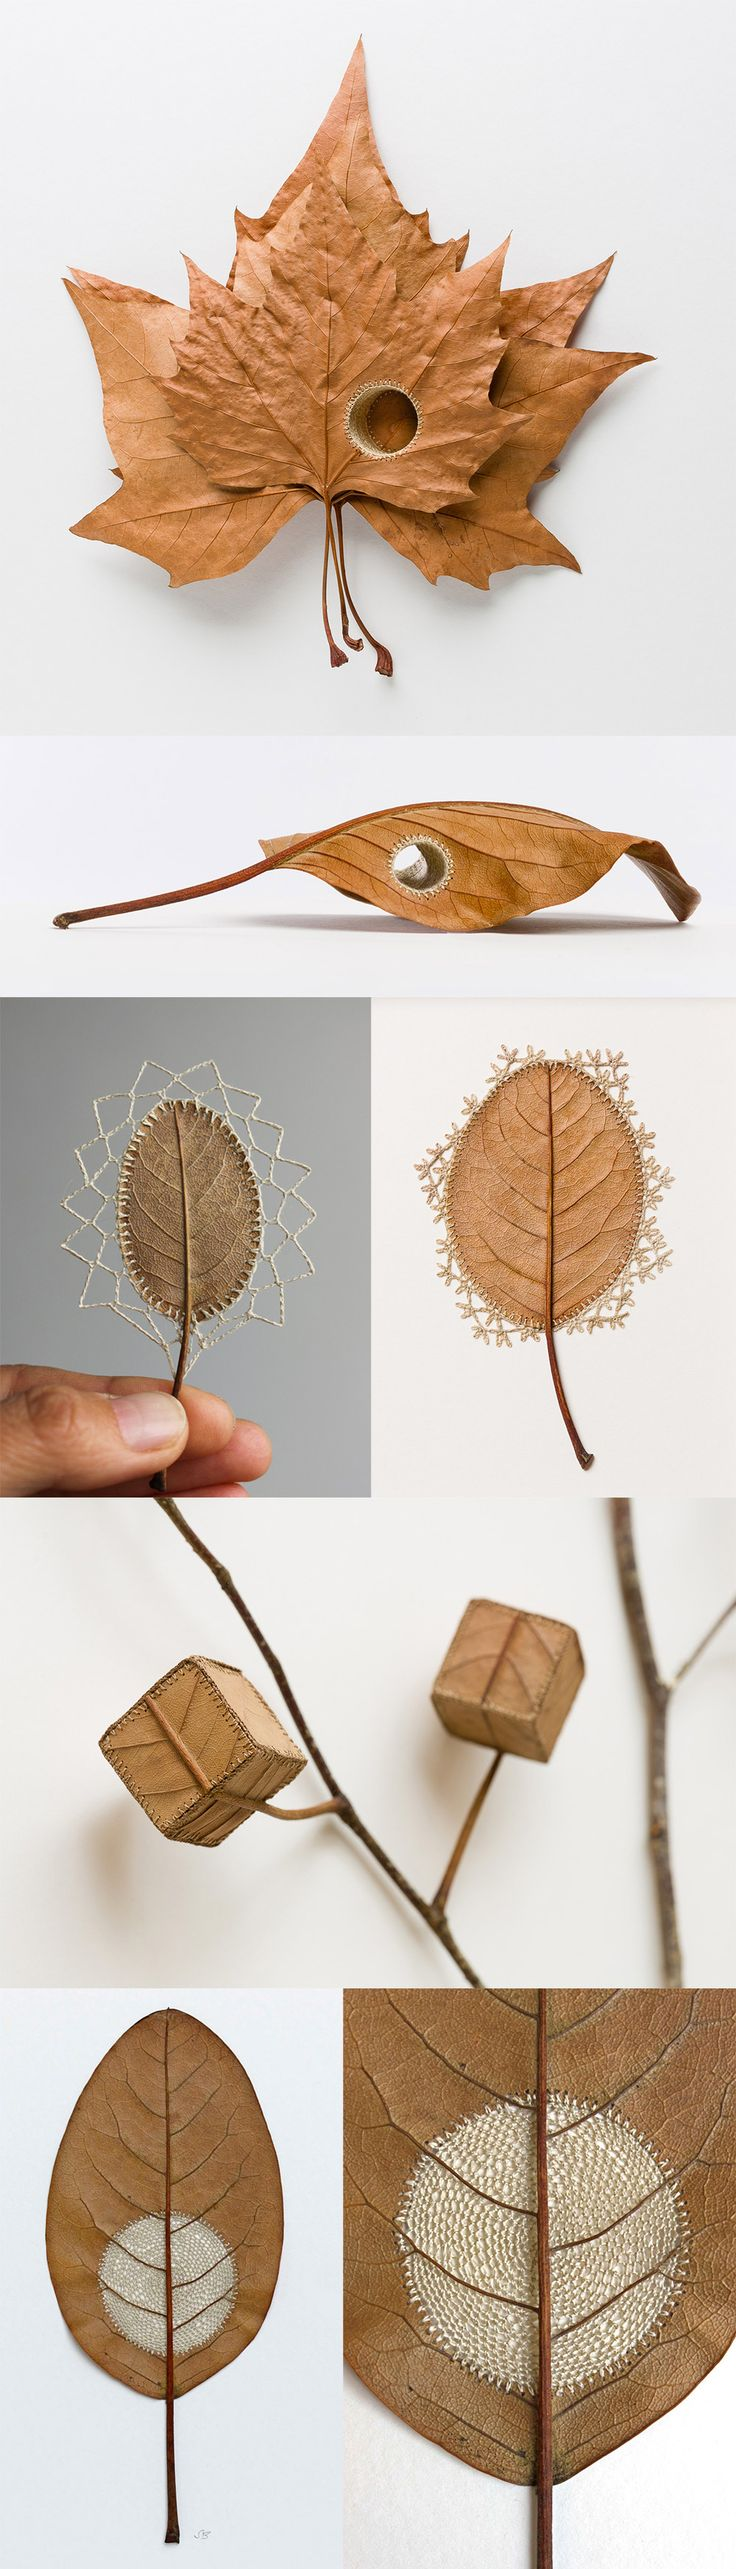 Impressive Crocheted Leaf Sculptures by Susanna Bauer   http://www.thisiscolossal.com/2015/06/impressive-crocheted-leaf-sculptures-by-susanna-bauer/